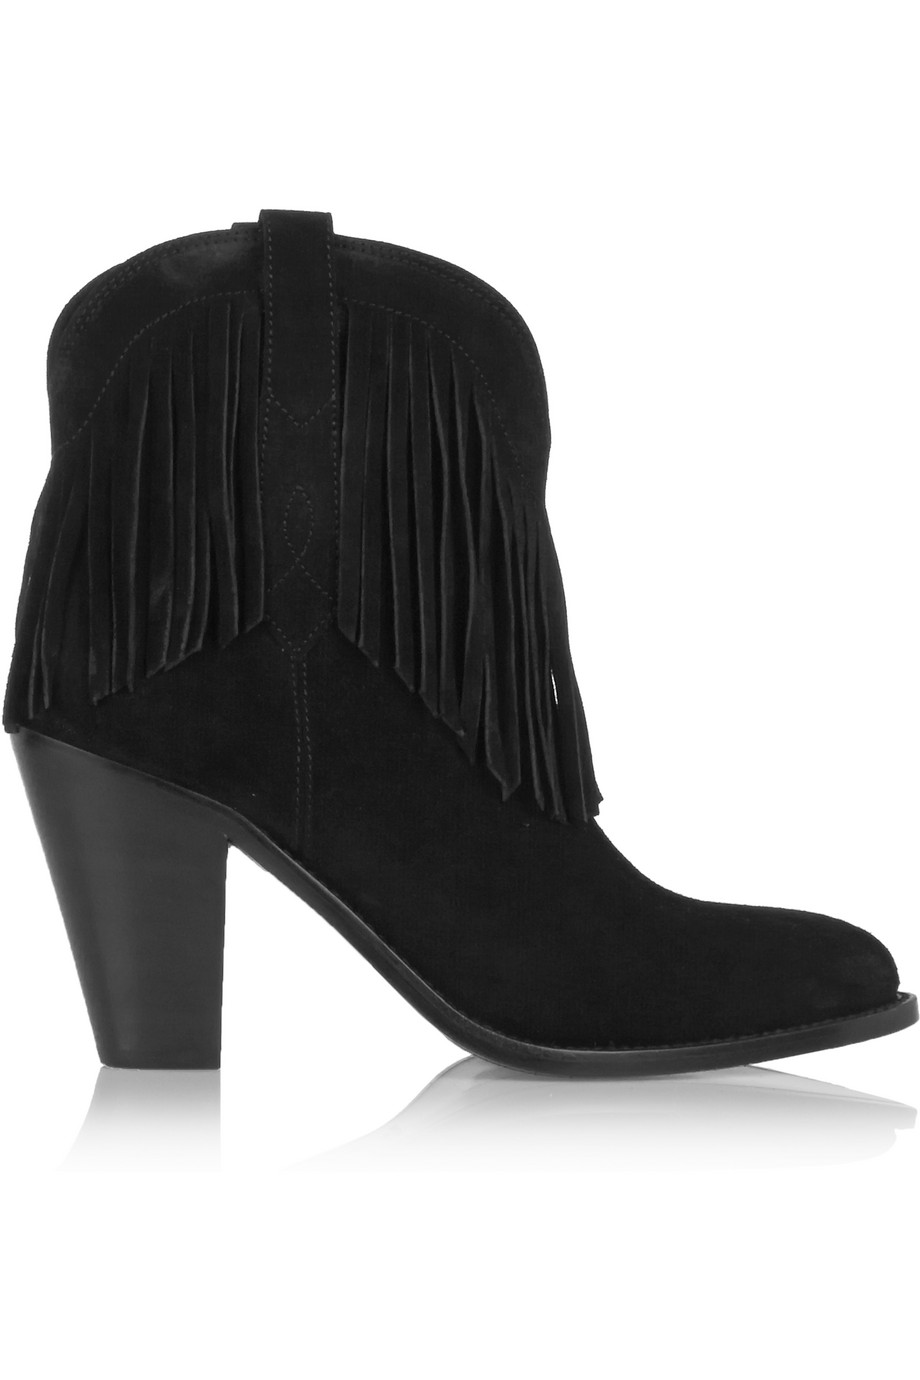 Saint Laurent New Western Fringed Suede Ankle Boots, Black, Women's US Size: 4, Size: 34.5